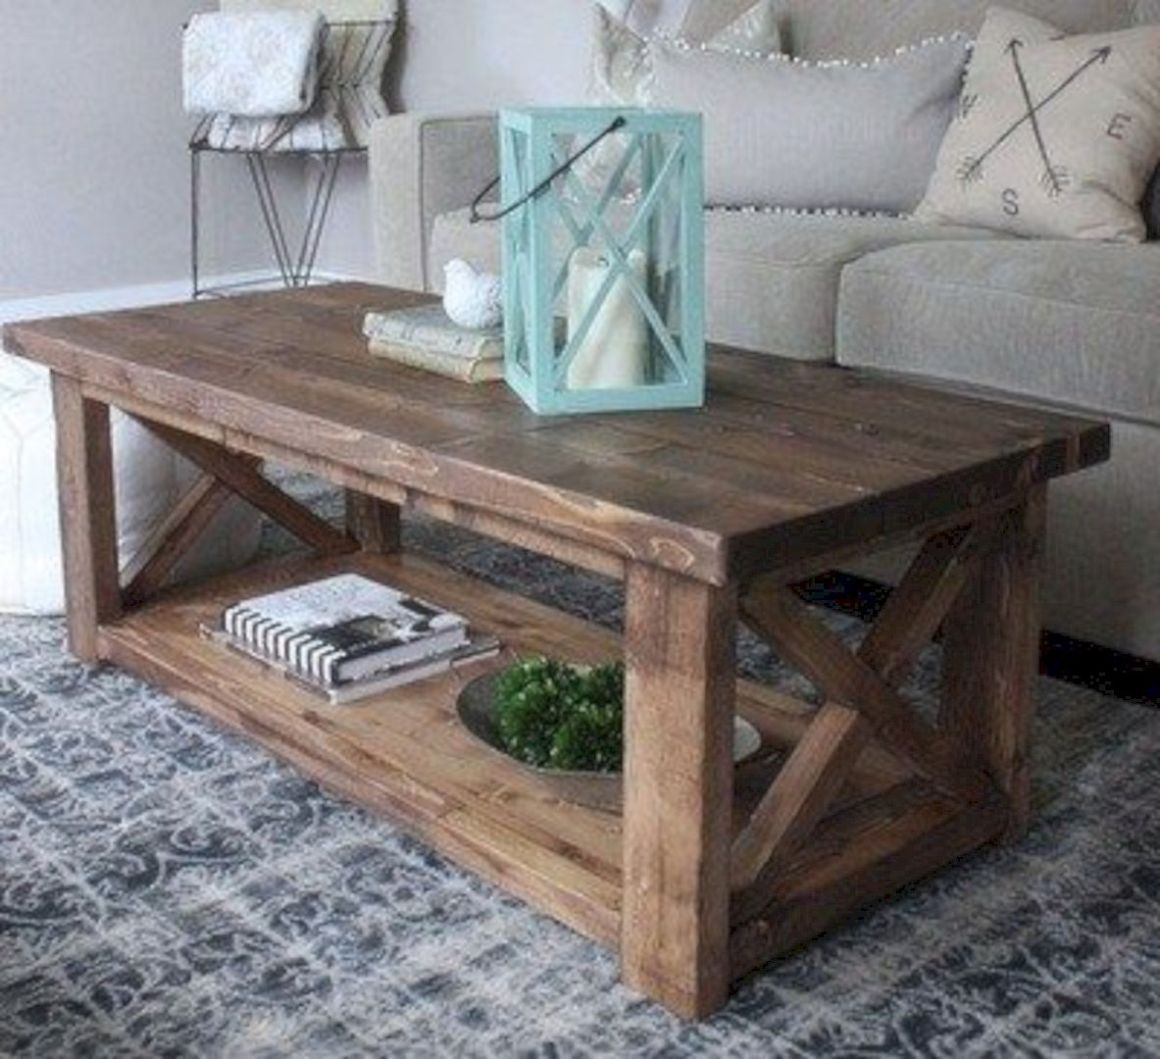 16 Rustic Furniture Ideas For A Simple Yet Stylish Home